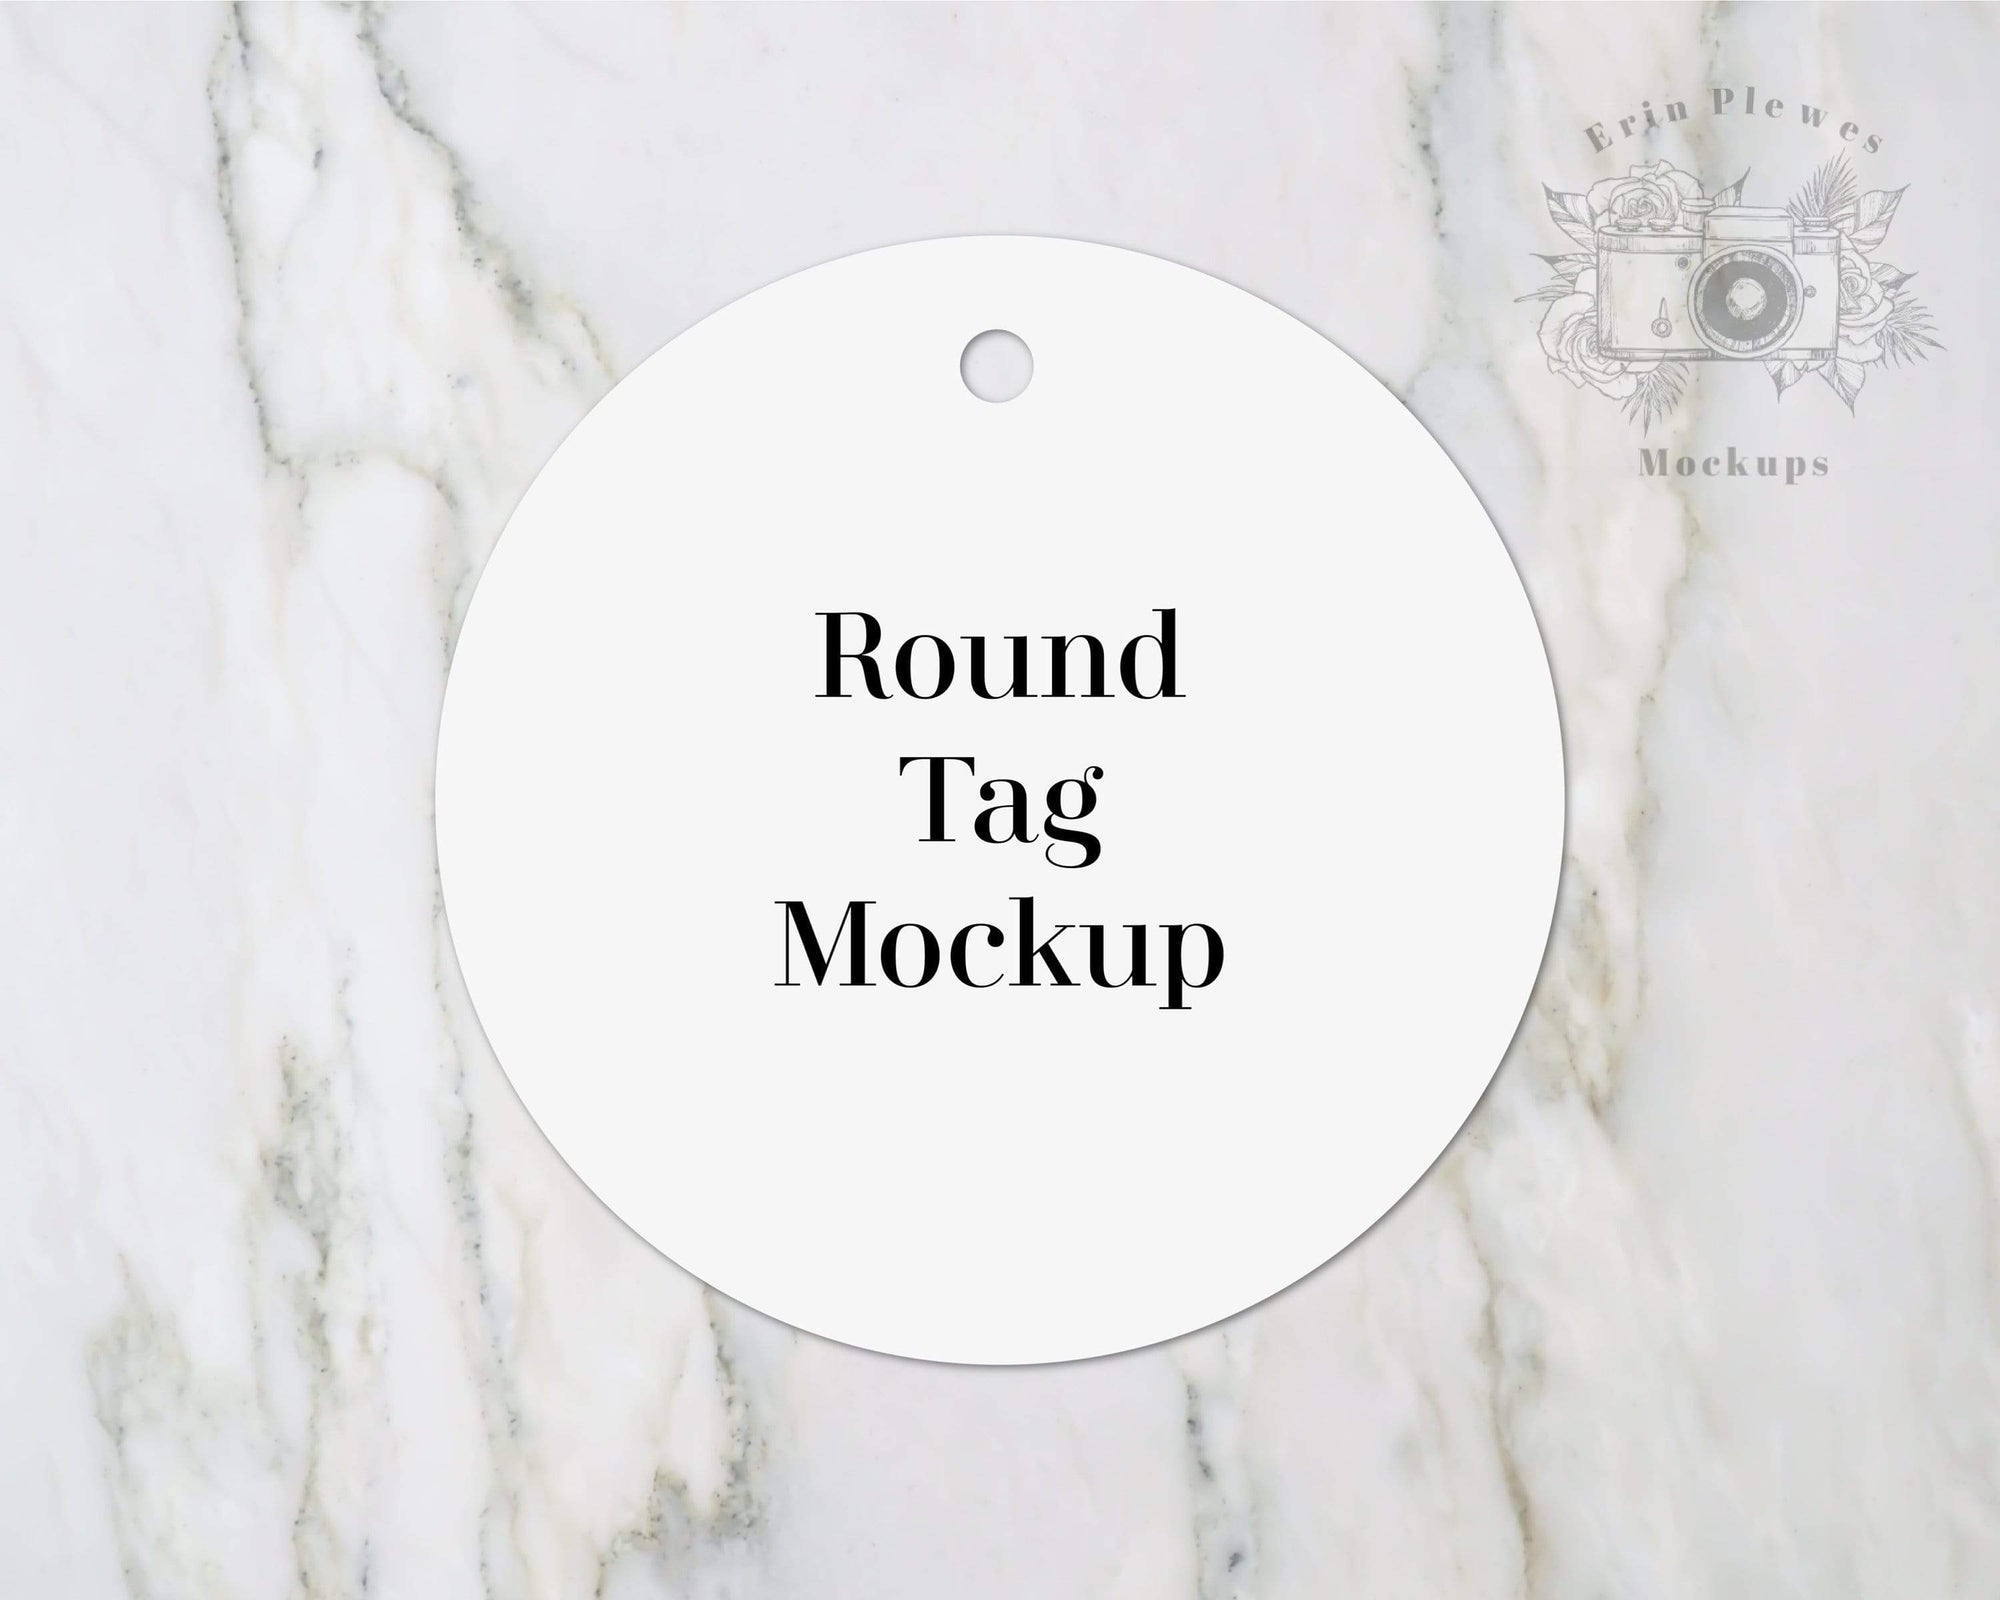 Erin Plewes Mockups Round tag mockup, Wedding gift tag mock up flat lay for present labels and lifestyle stock photography, Jpeg instant Digital Download